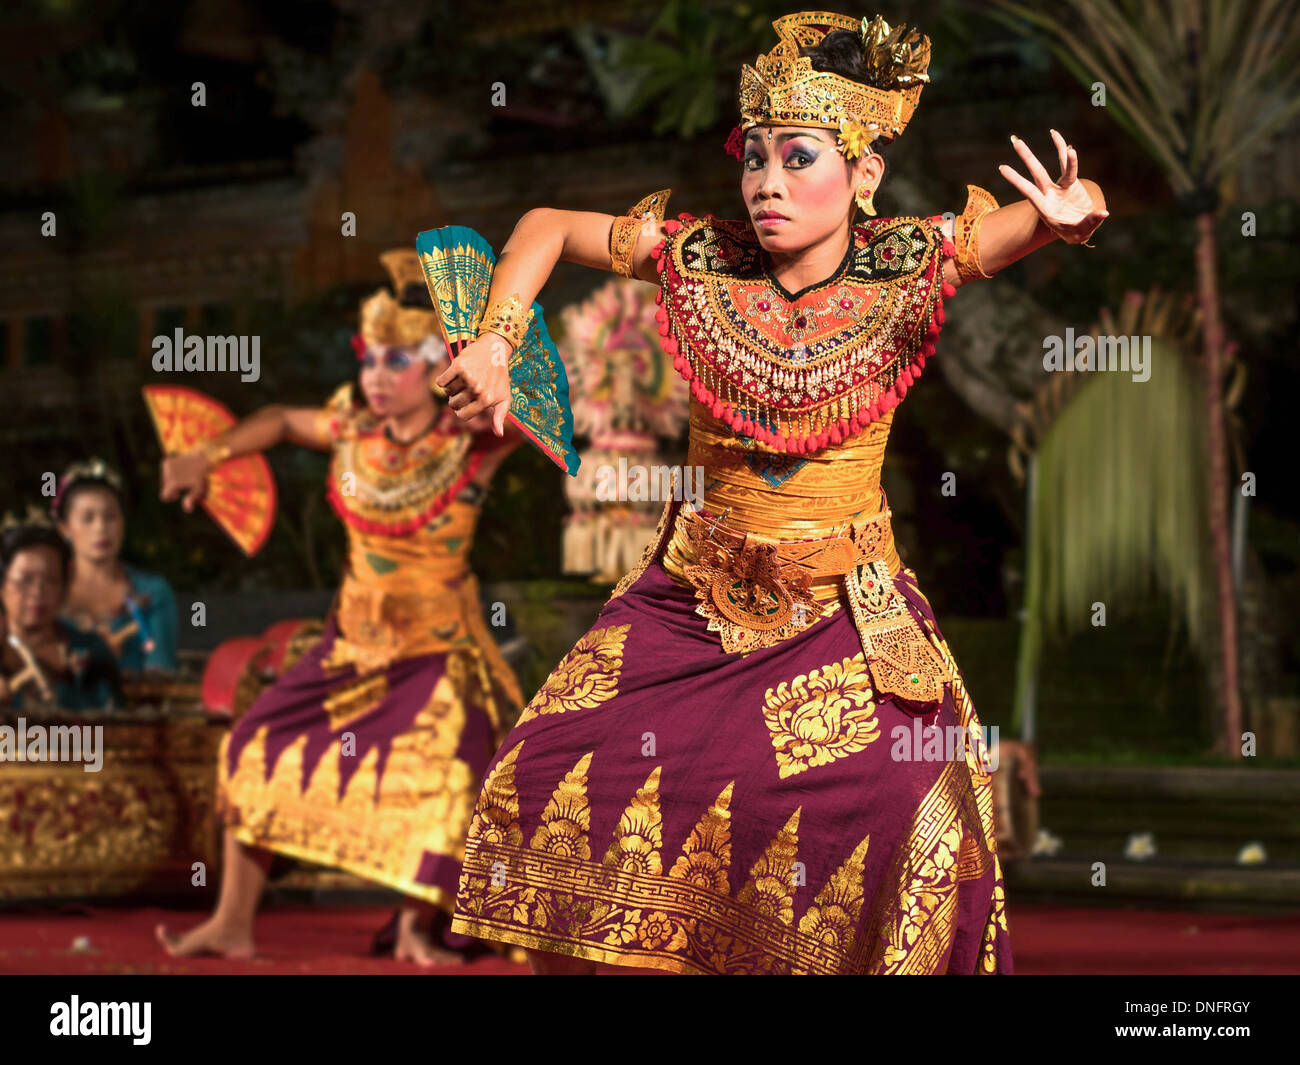 Dancers perform traditional Legong and Barong dance at open air theater in Ubud, Bali. - Stock Image